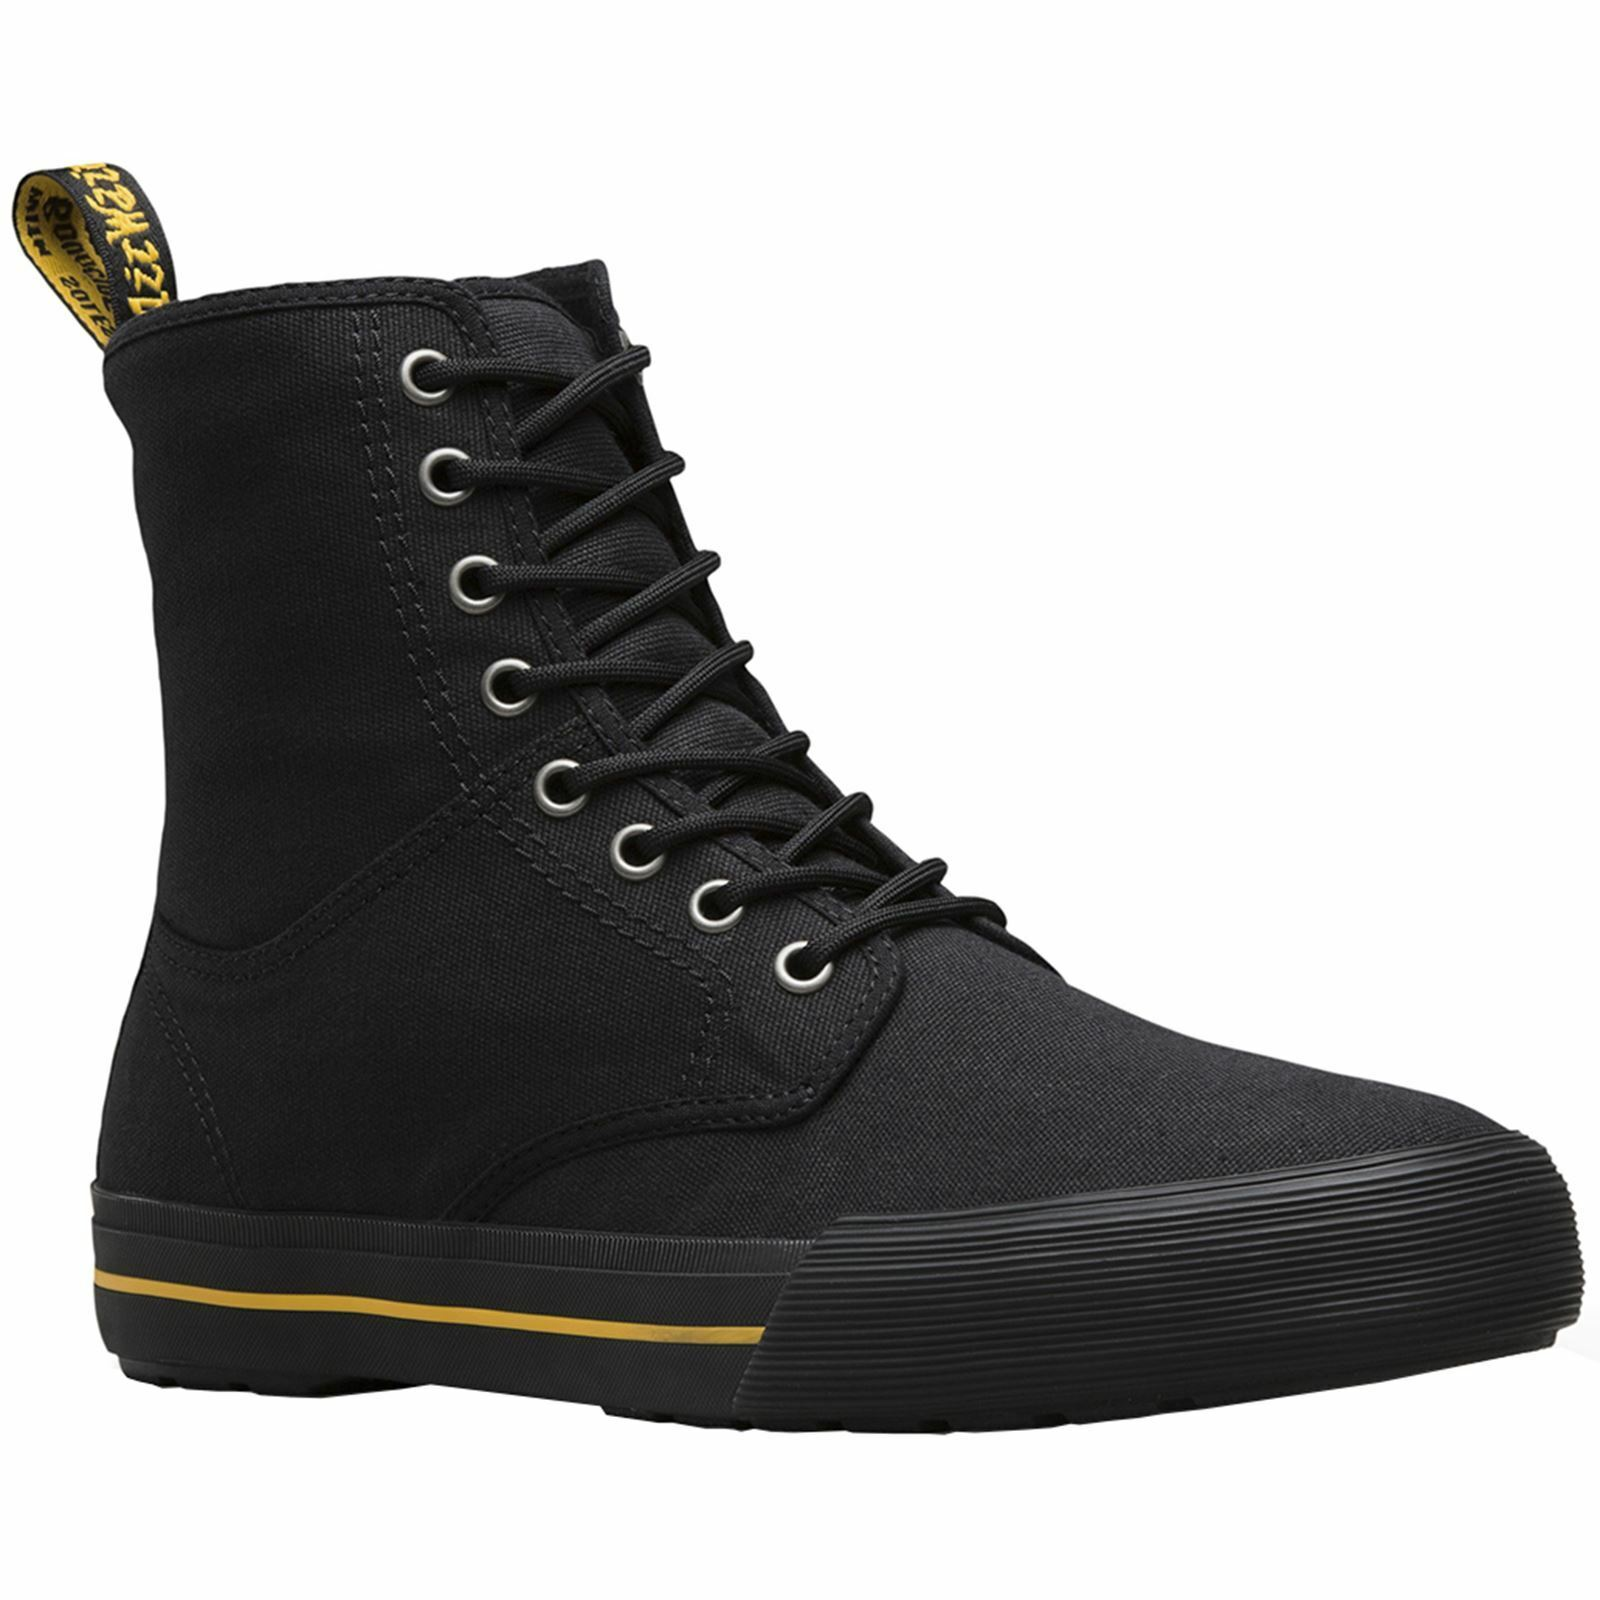 DR. Martens Winsted 8-Eyelet nero donna Canvas Hi-Top Sporty Ankle stivali